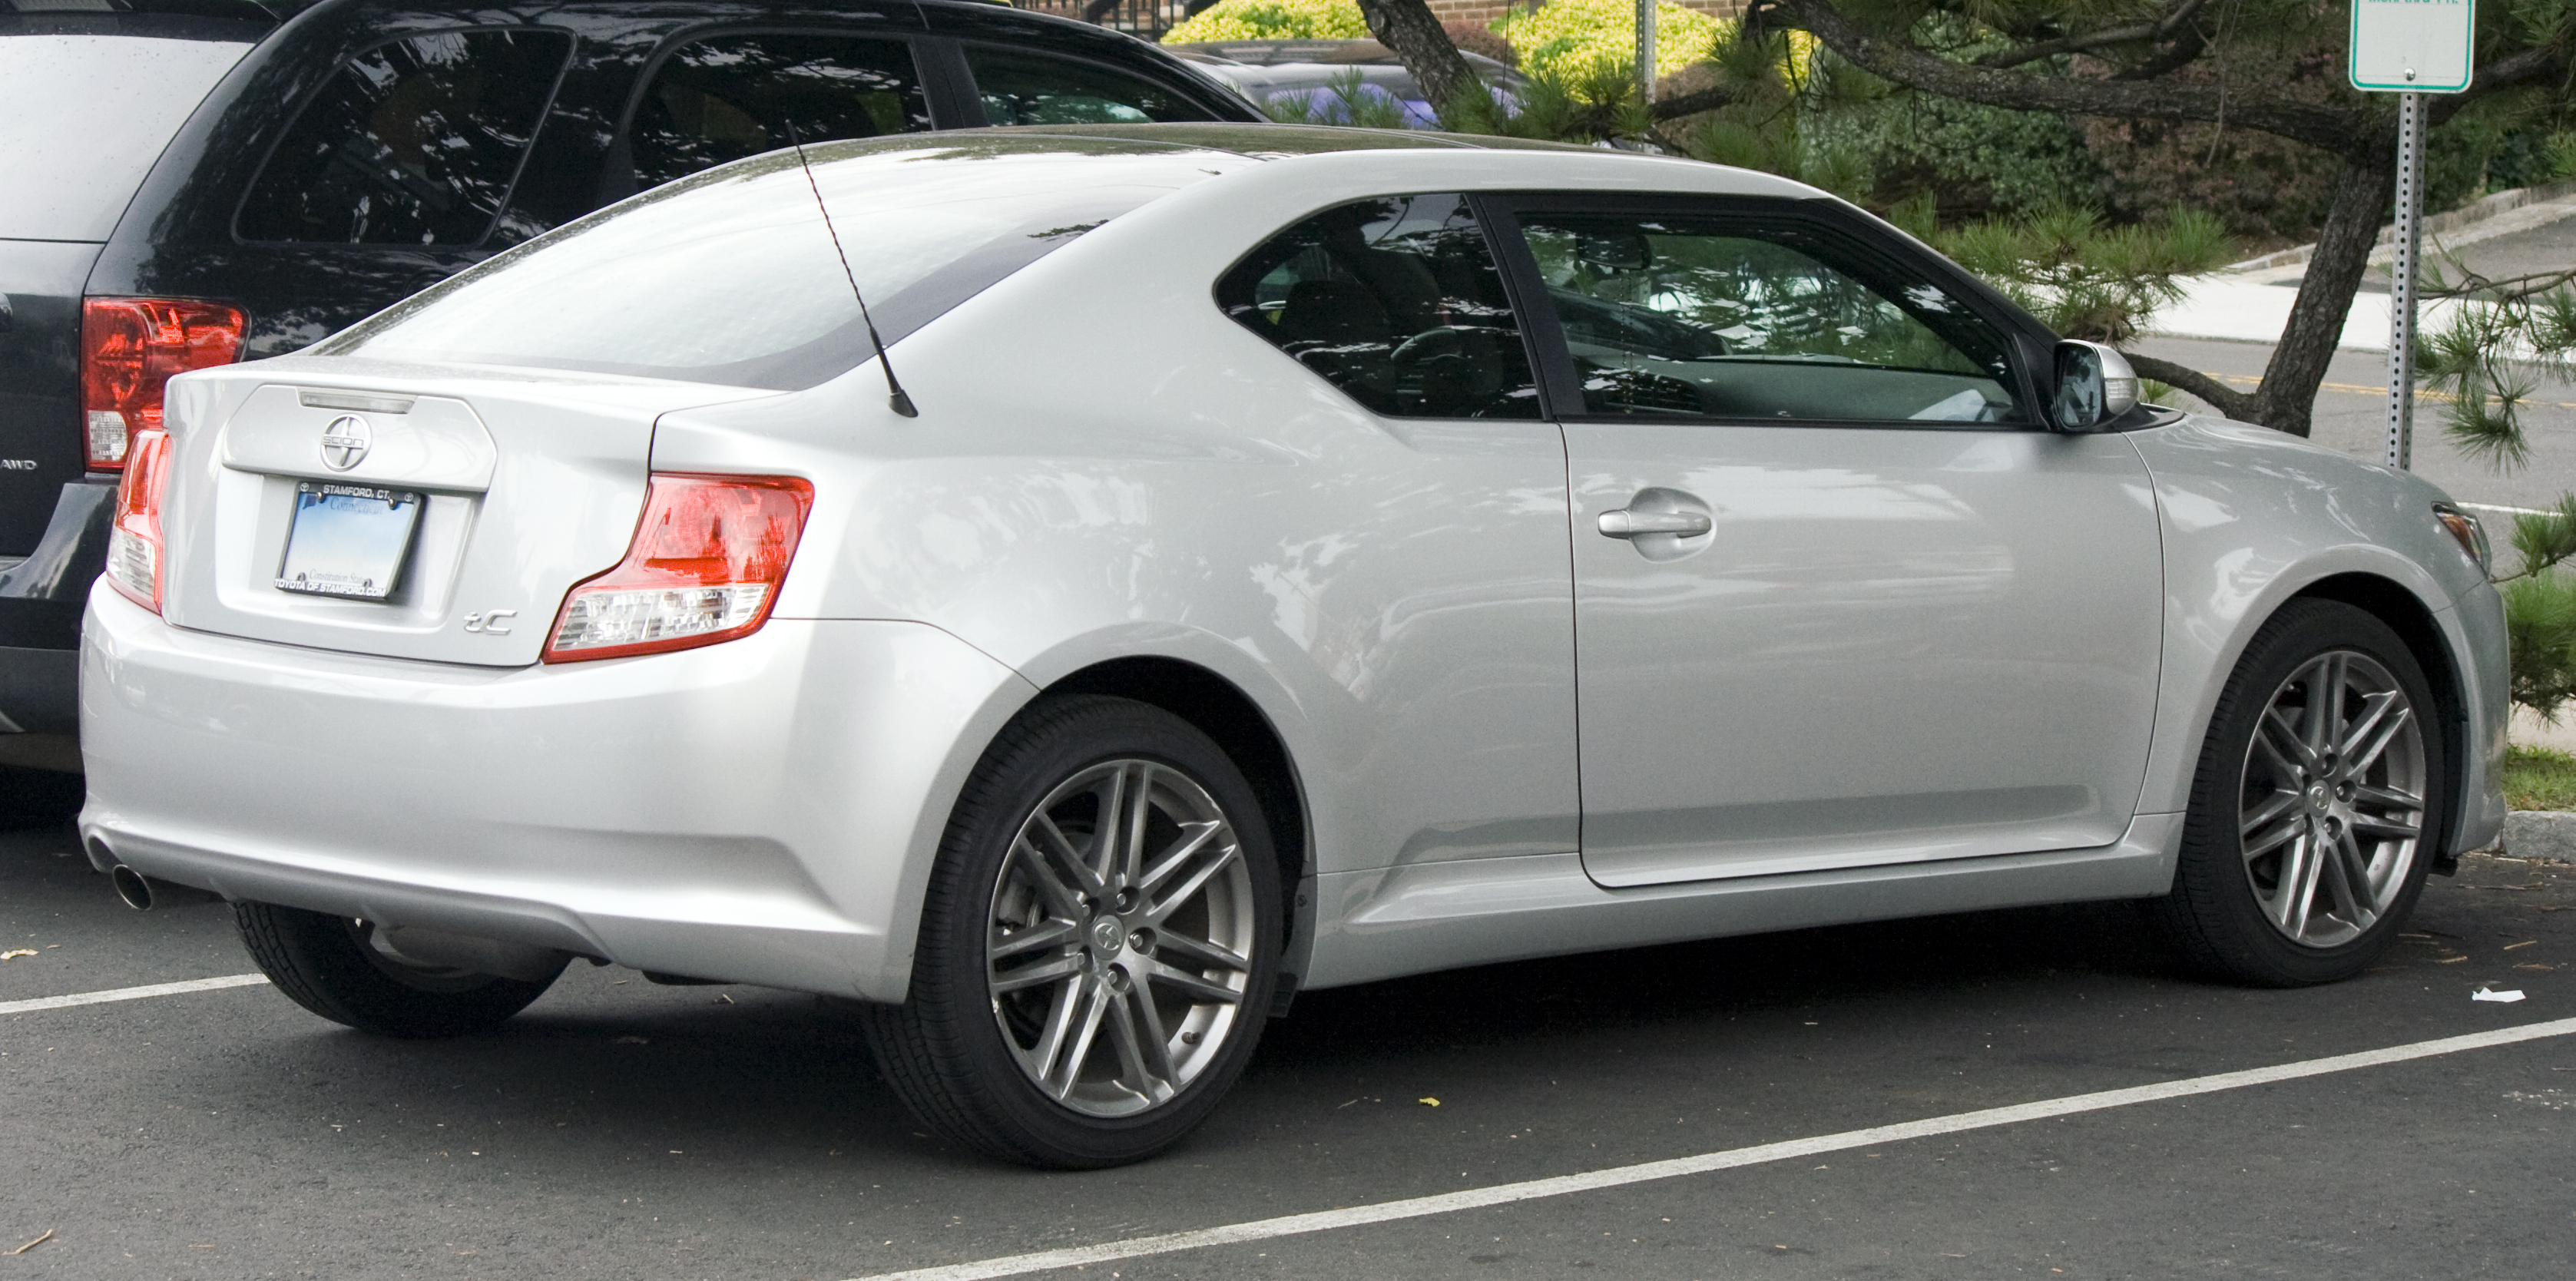 Worksheet. FileScion tC 2nd rearjpg  Wikimedia Commons